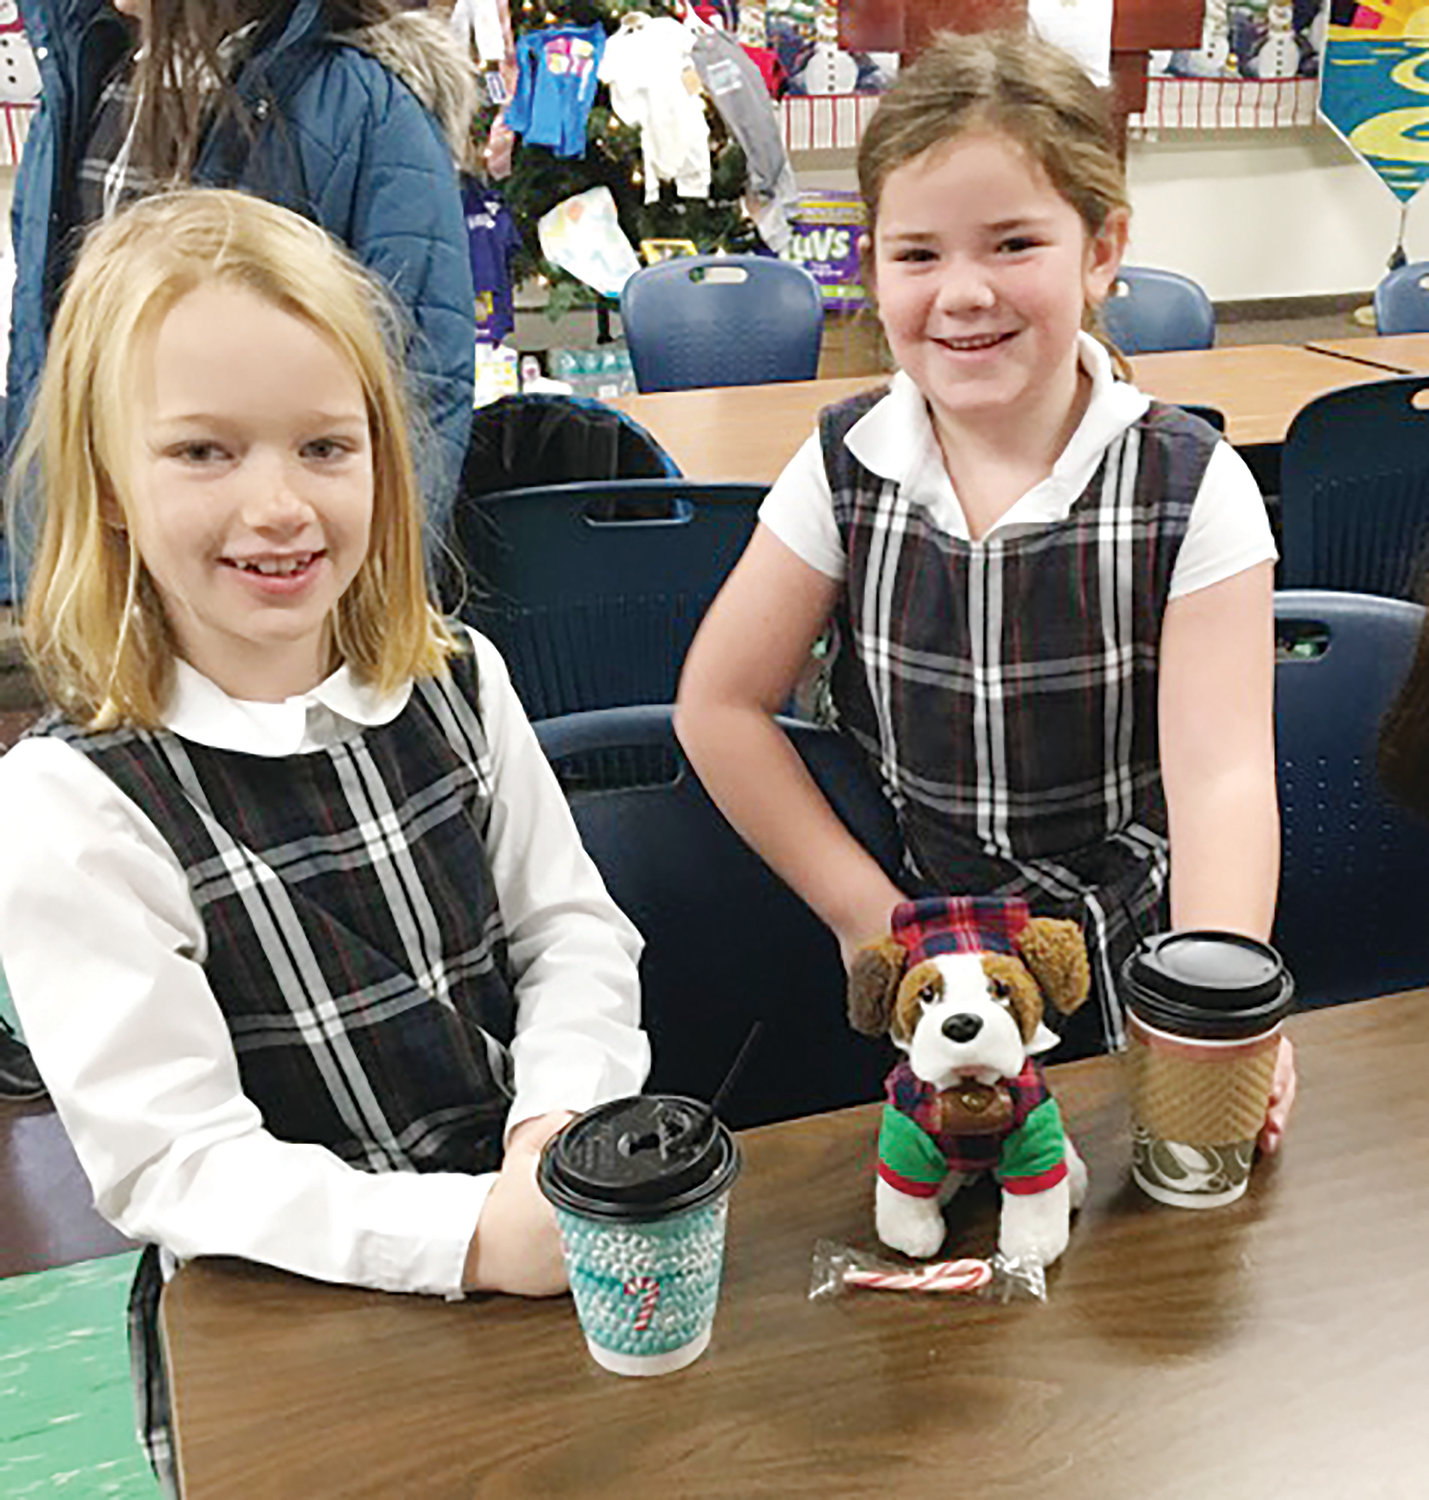 Second graders Michaela O'Connor and Skylar Murphy enjoy some cocoa.